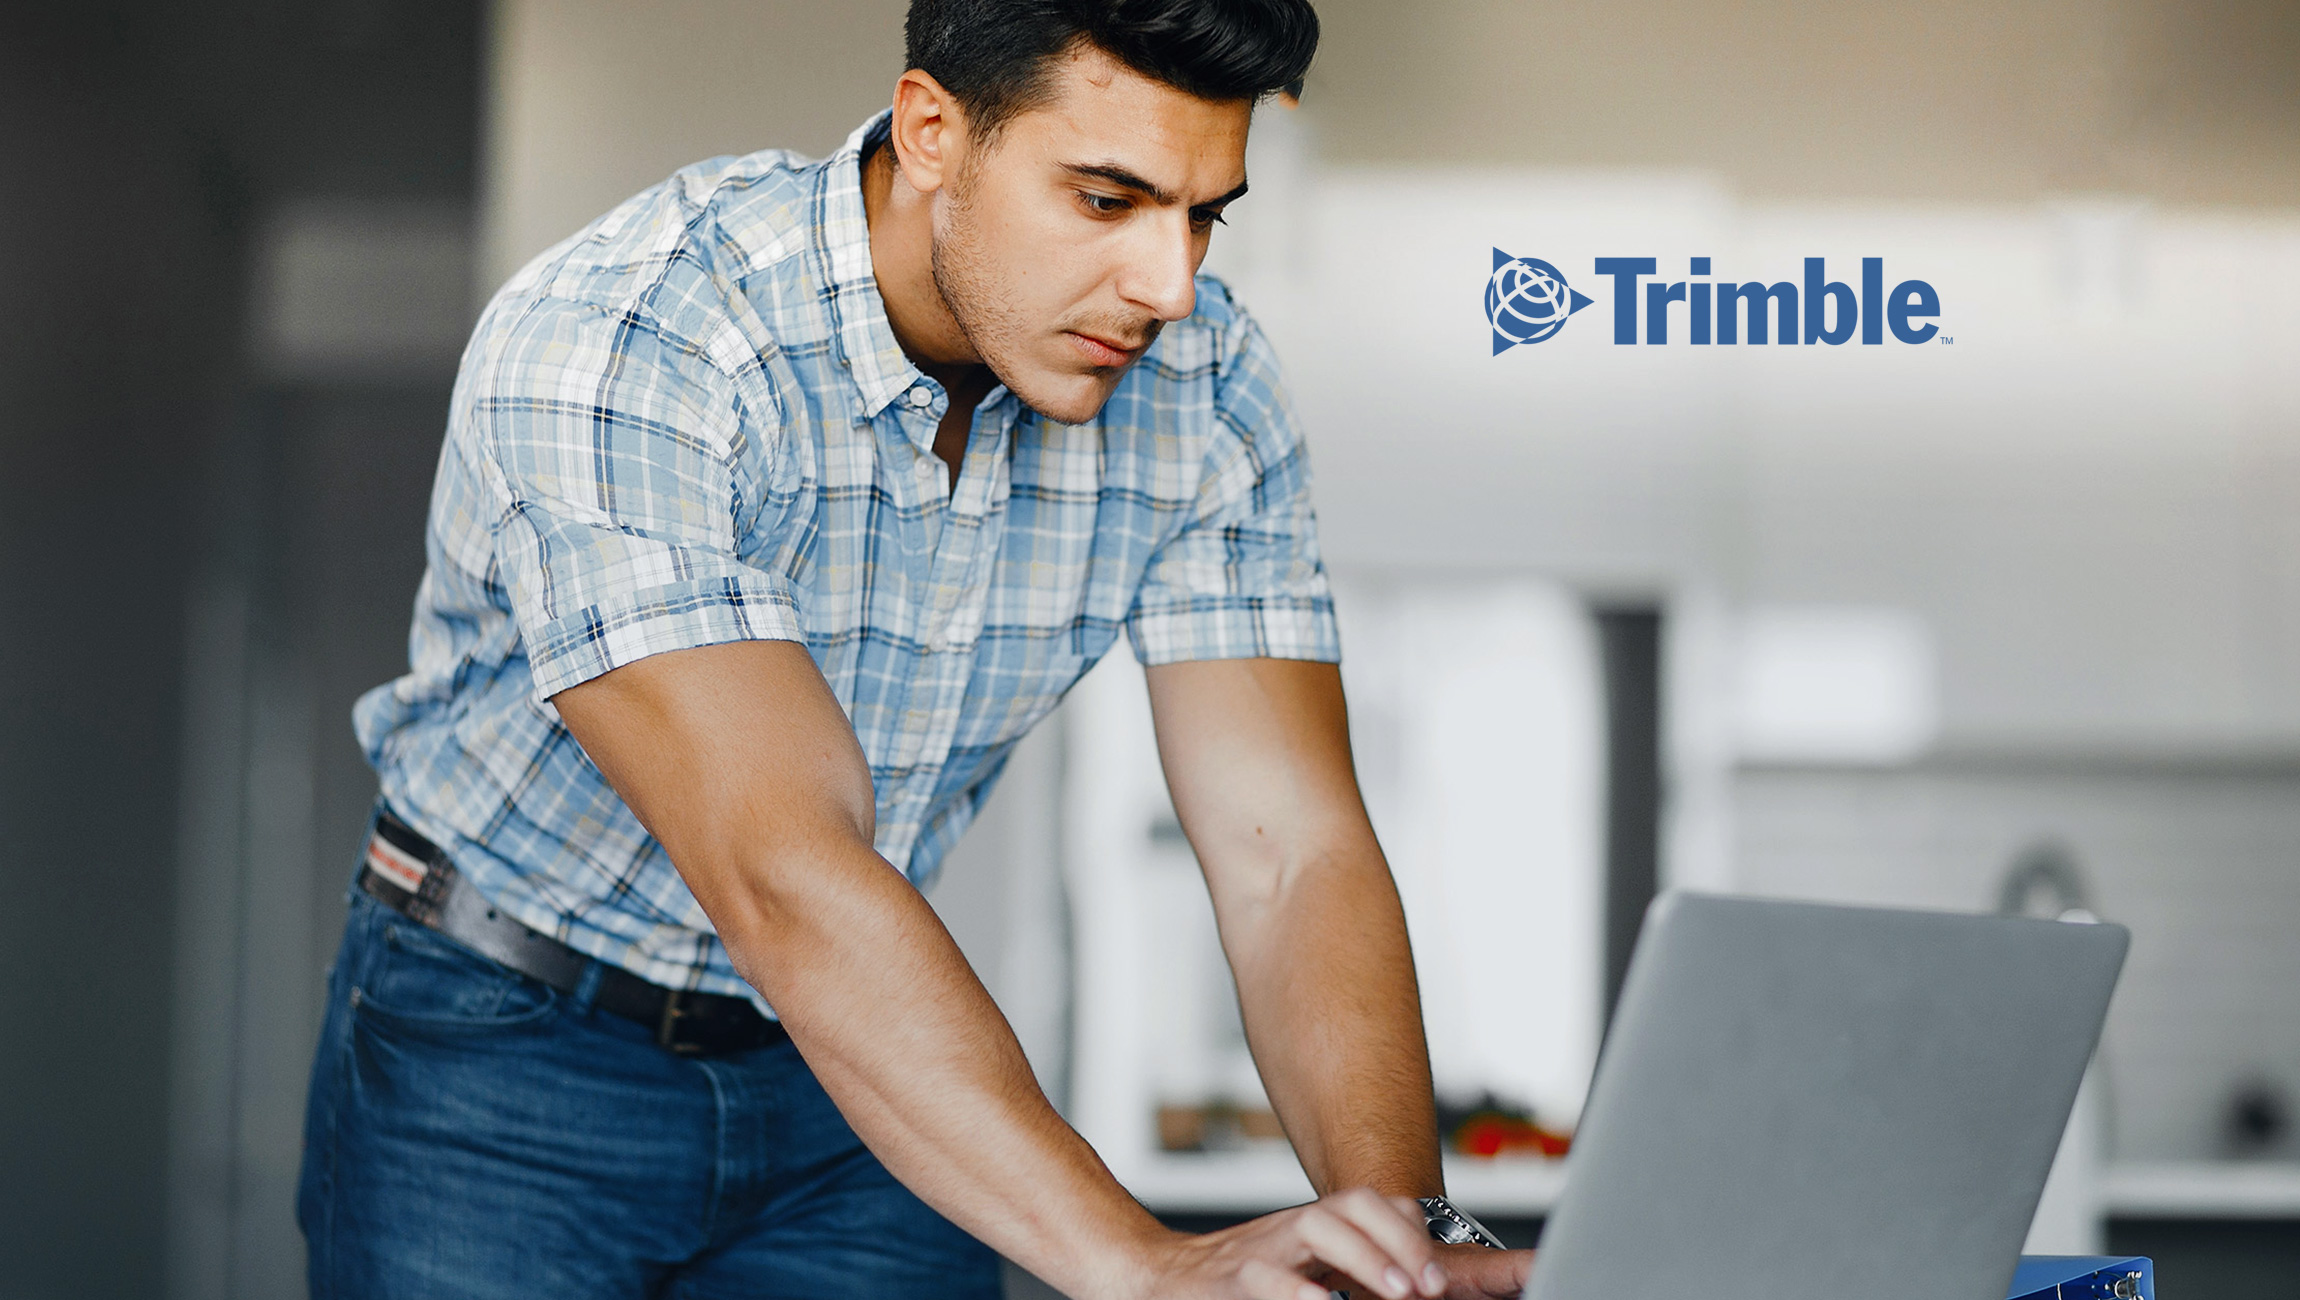 Trimble Expands PULSE Field Management Platform to Seamlessly Connect Service, Equipment and Fleet Managers on a Single Platform